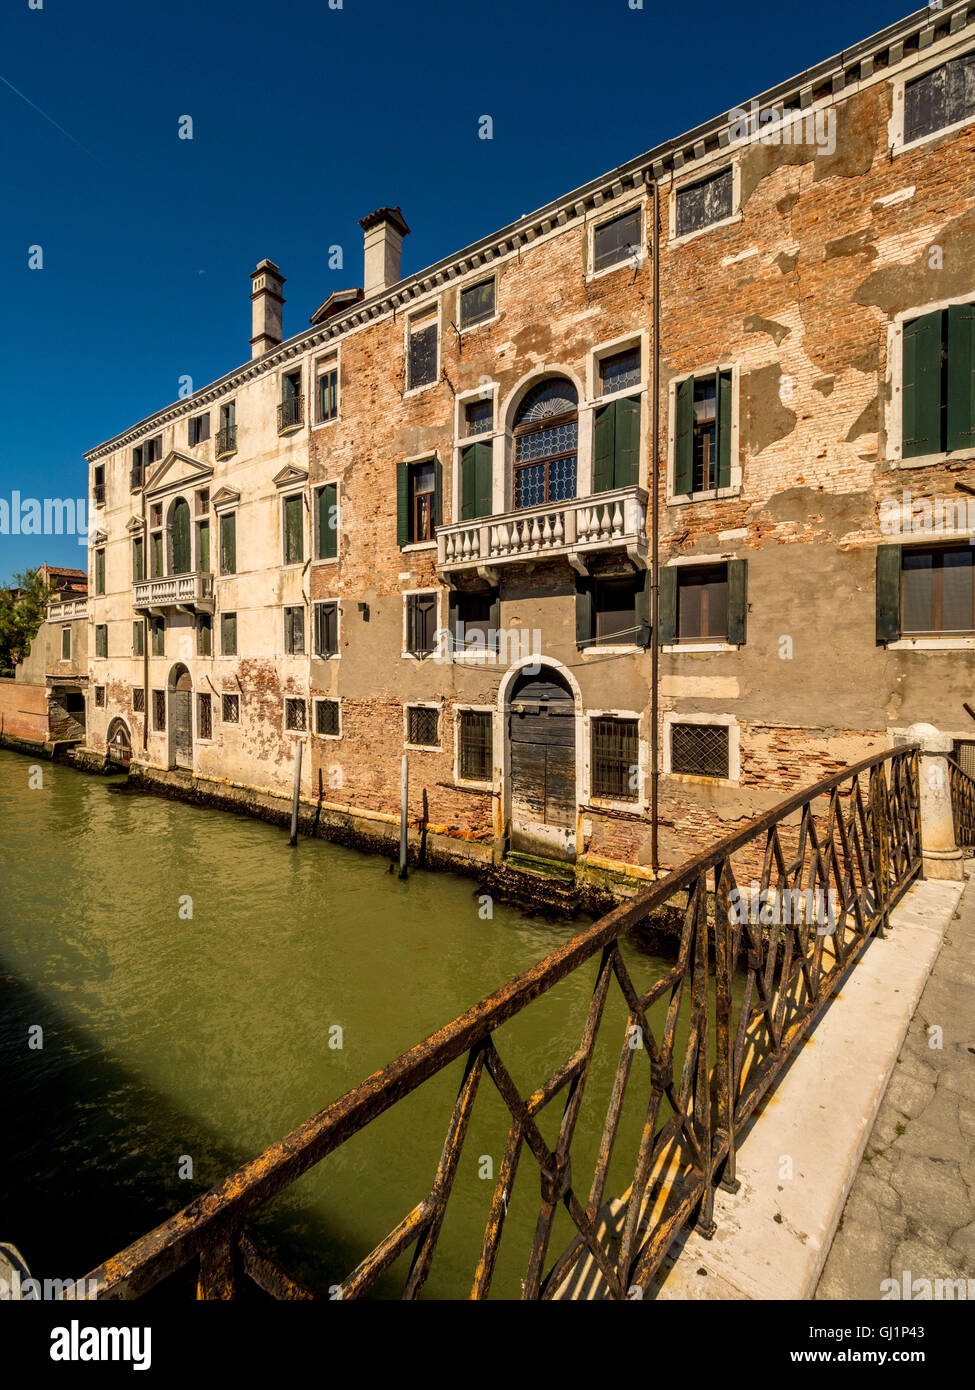 Traditional canal side building, with flaky rendering and exposed bricks. Venice, Italy. - Stock Image